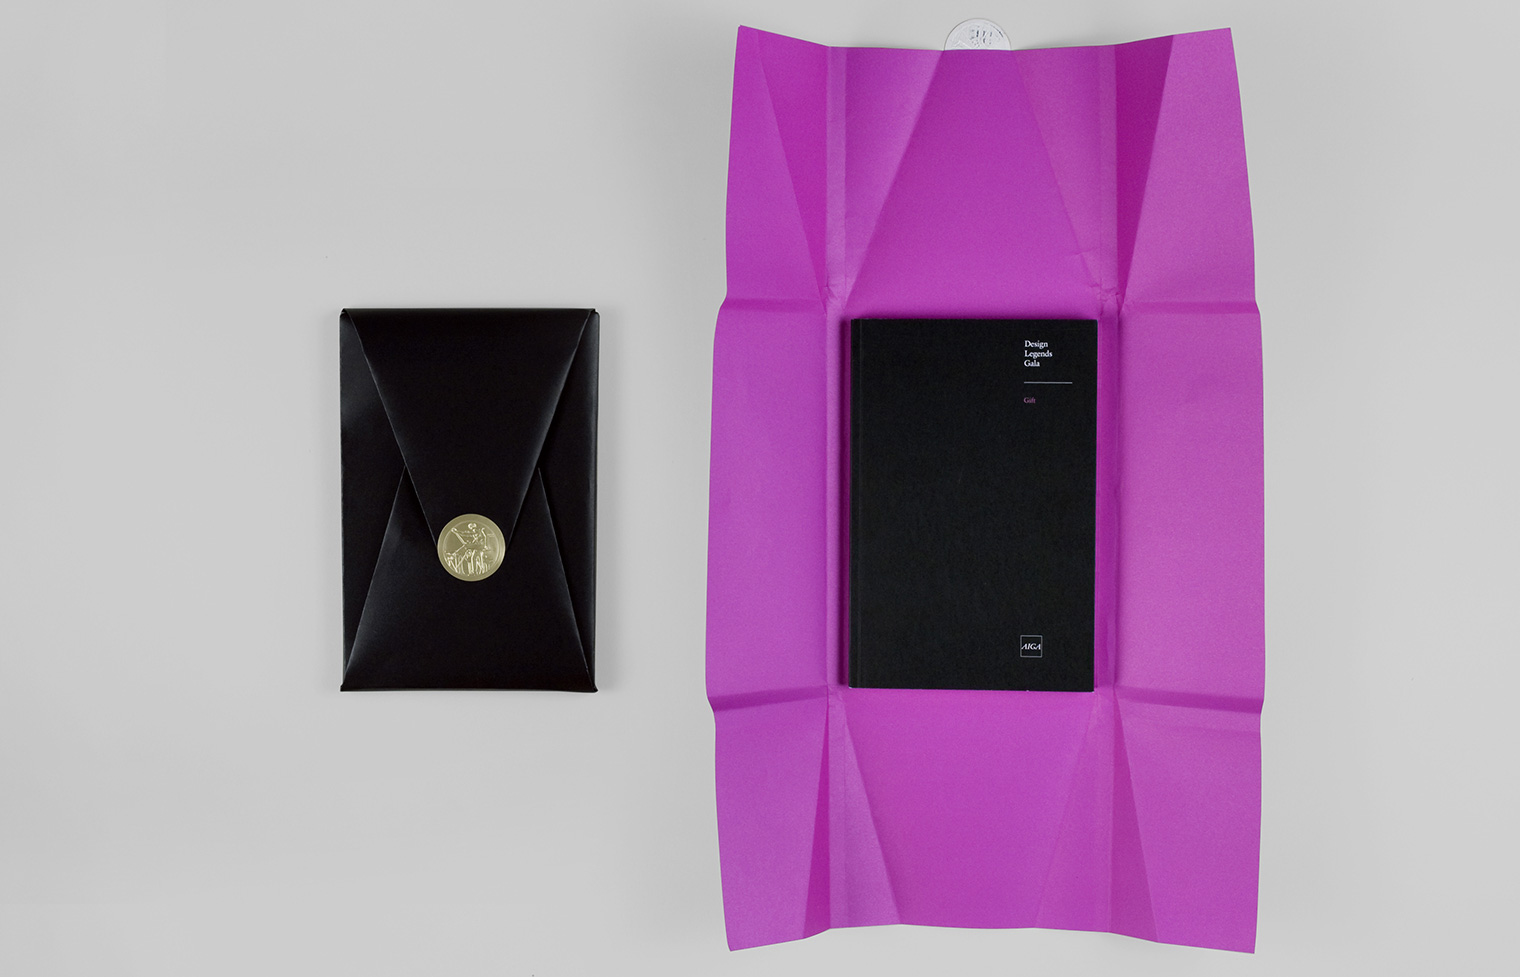 The commemorative book, wrapped in paper and closed with the AIGA seal and unwrapped. It is given to each Design Legends Gala attendee.